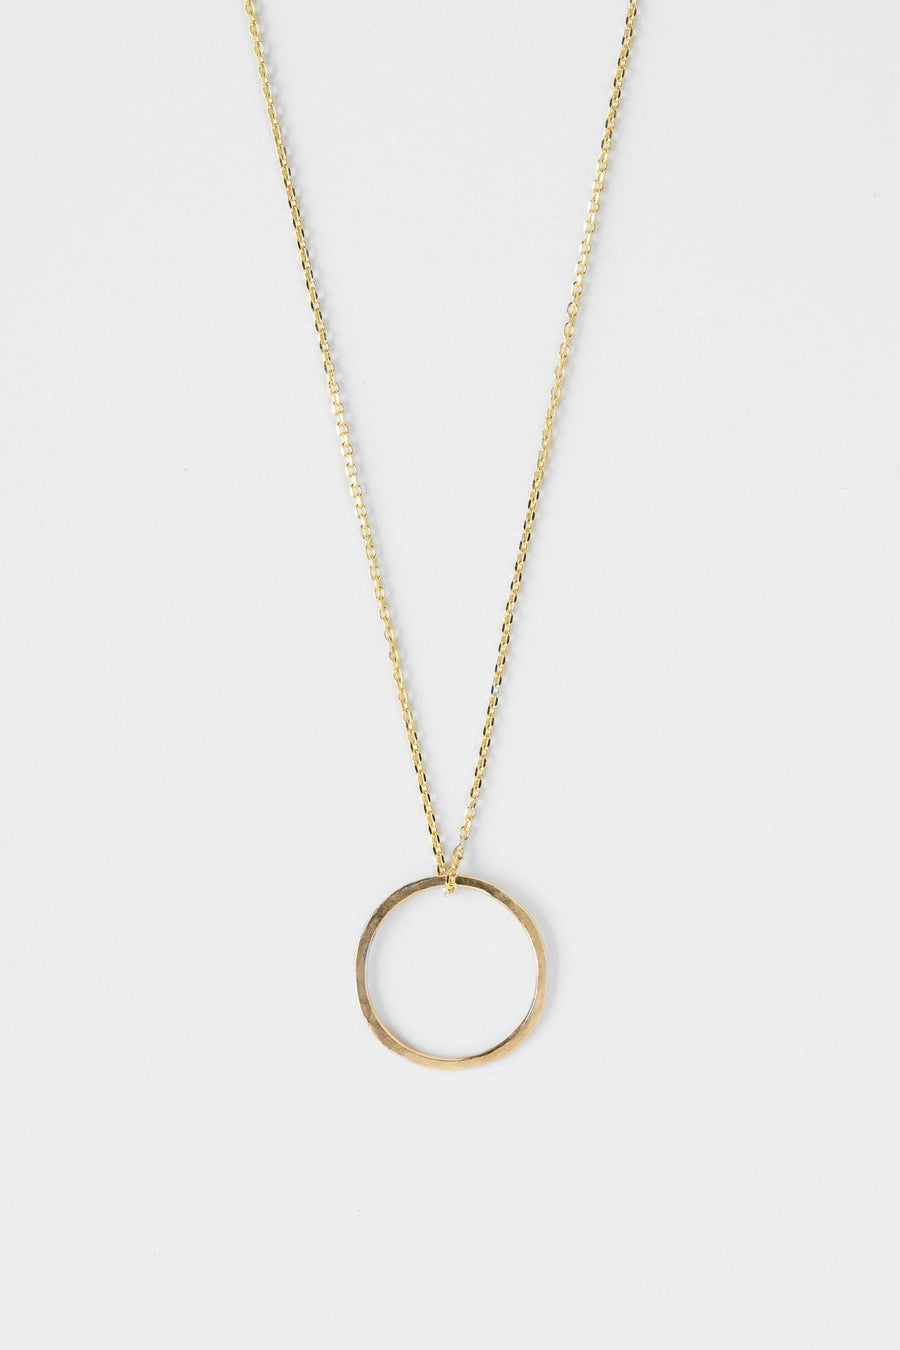 treen-studio-adorn-gold-circle-necklace